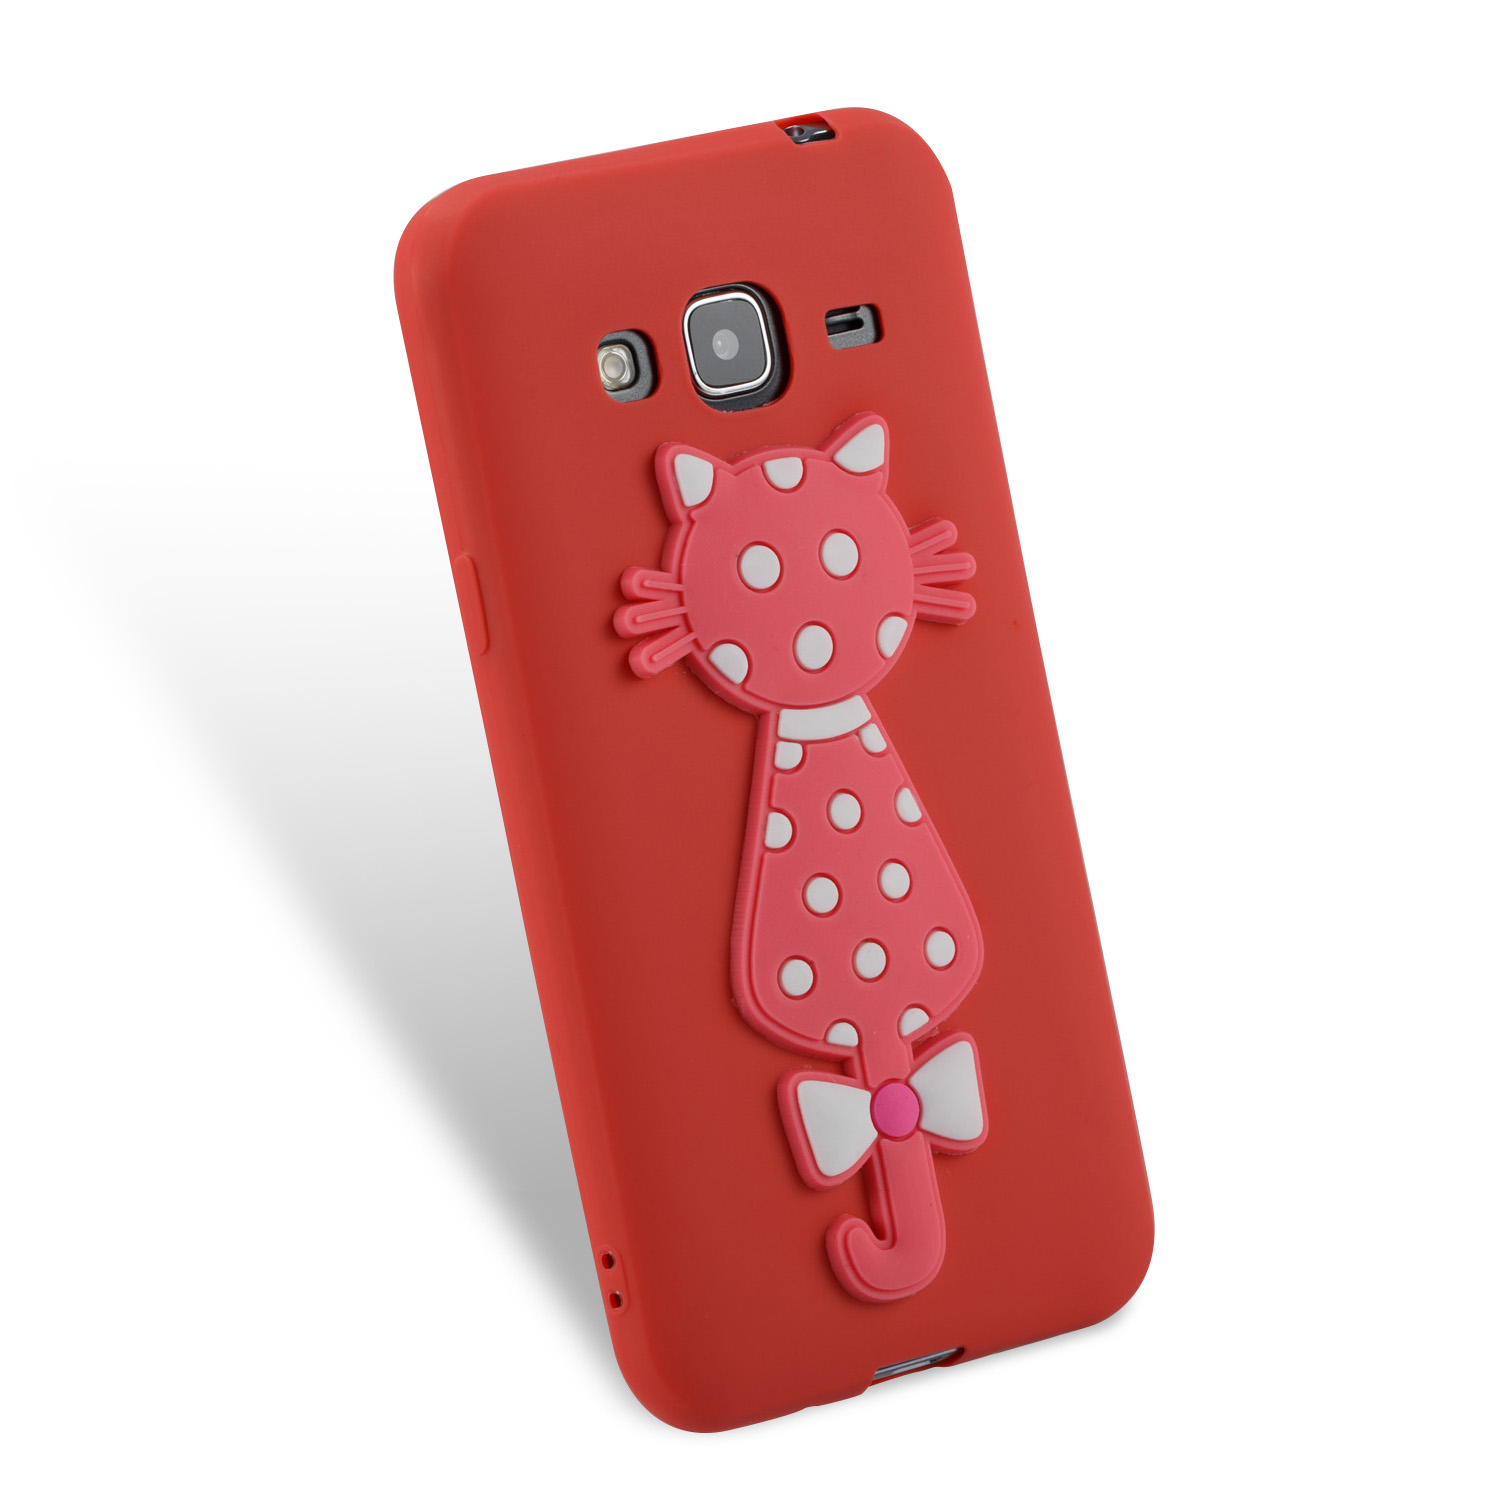 Silicone TPU Cute Cartoon Soft Phone Case Kryty Shell Cover For Samsung Samsug Sumsung Galax J3 2016 J 310